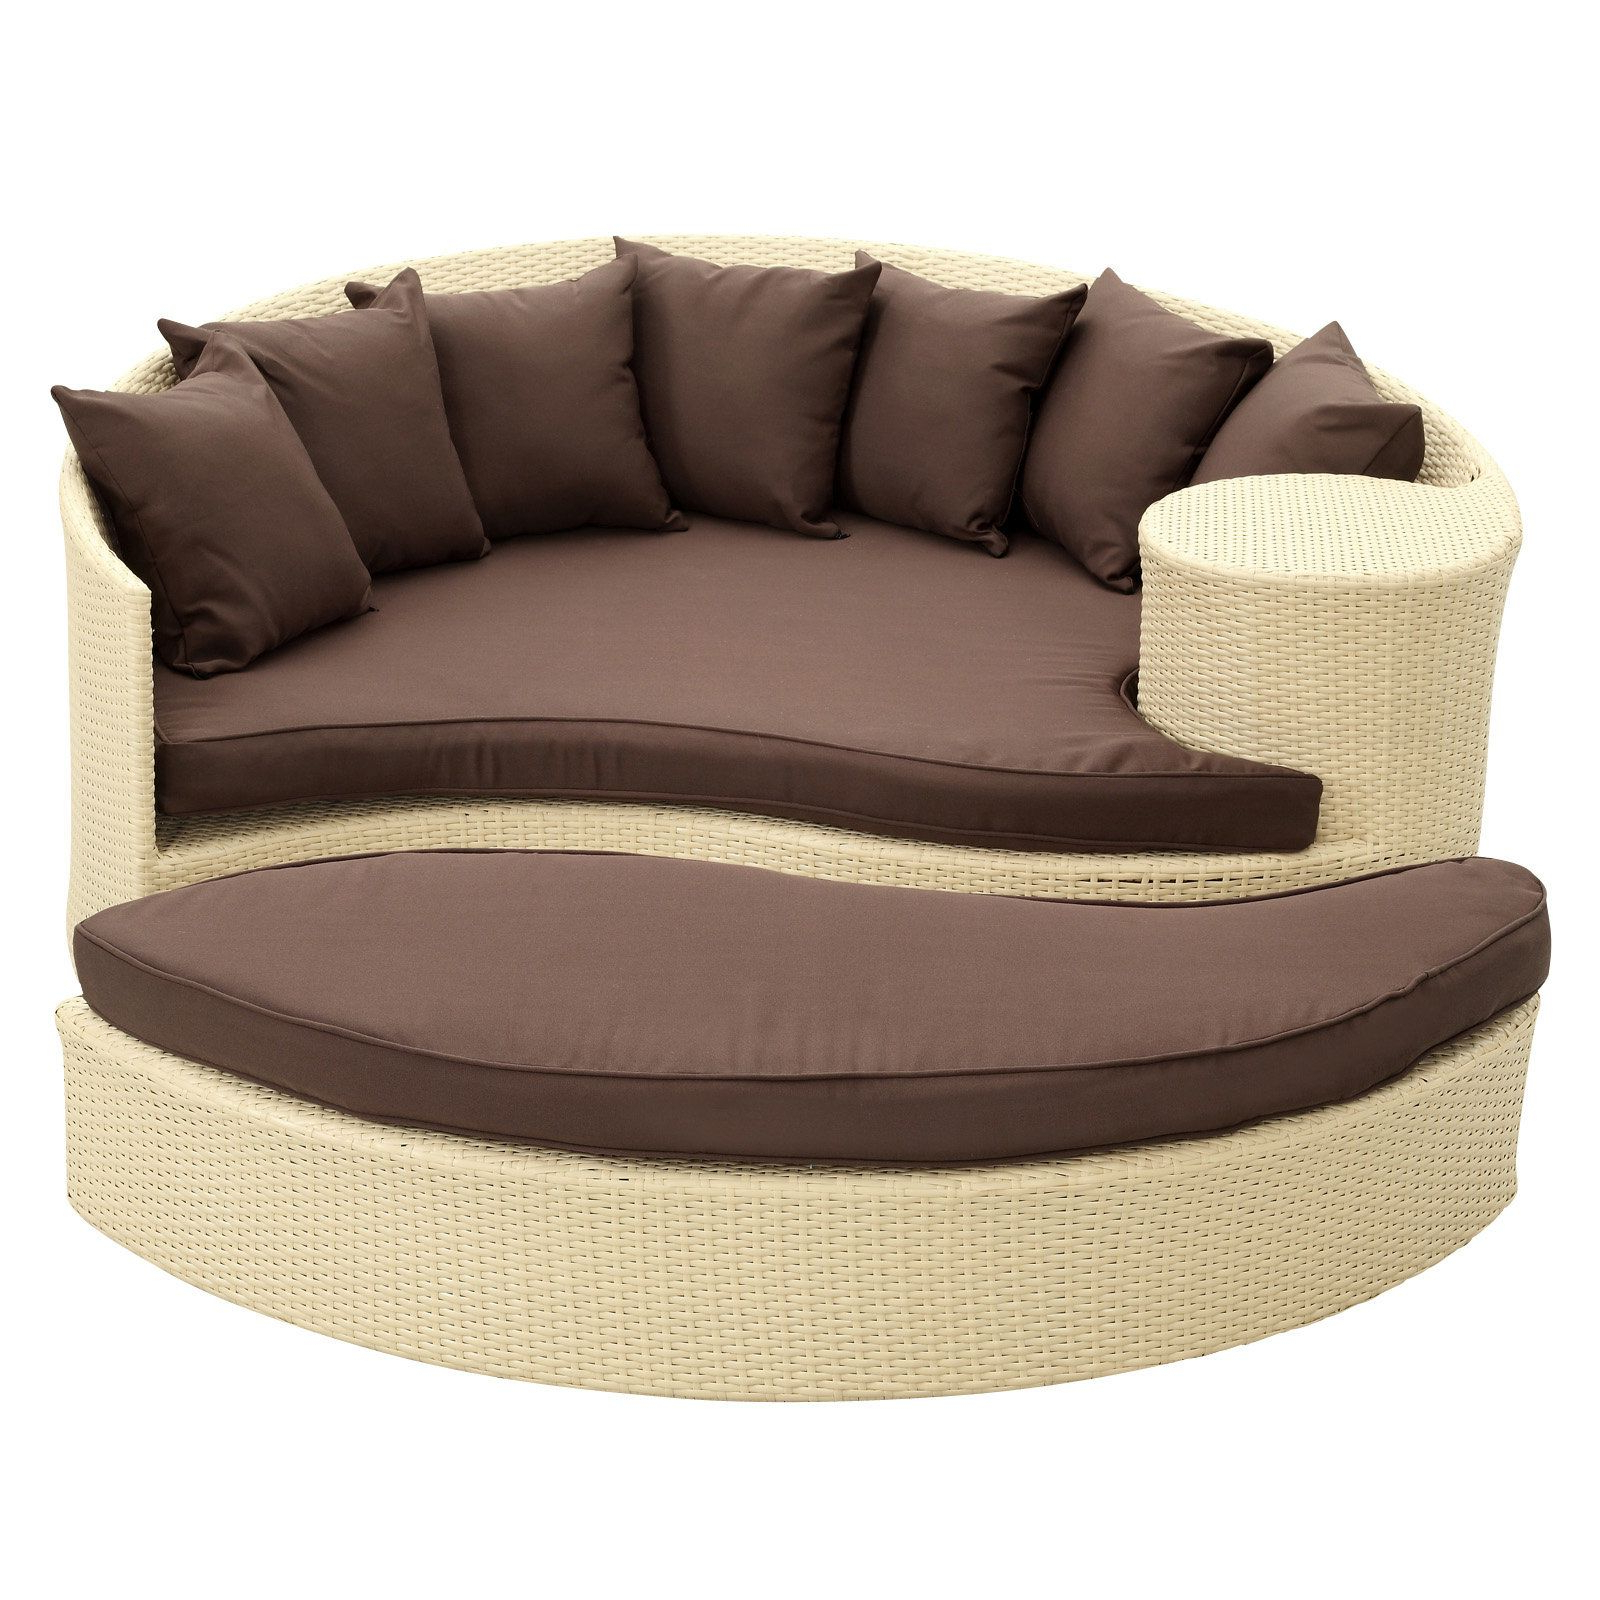 Greening Outdoor Daybeds With Ottoman & Cushions Within Preferred Brentwood Daybed With Cushions (View 4 of 20)